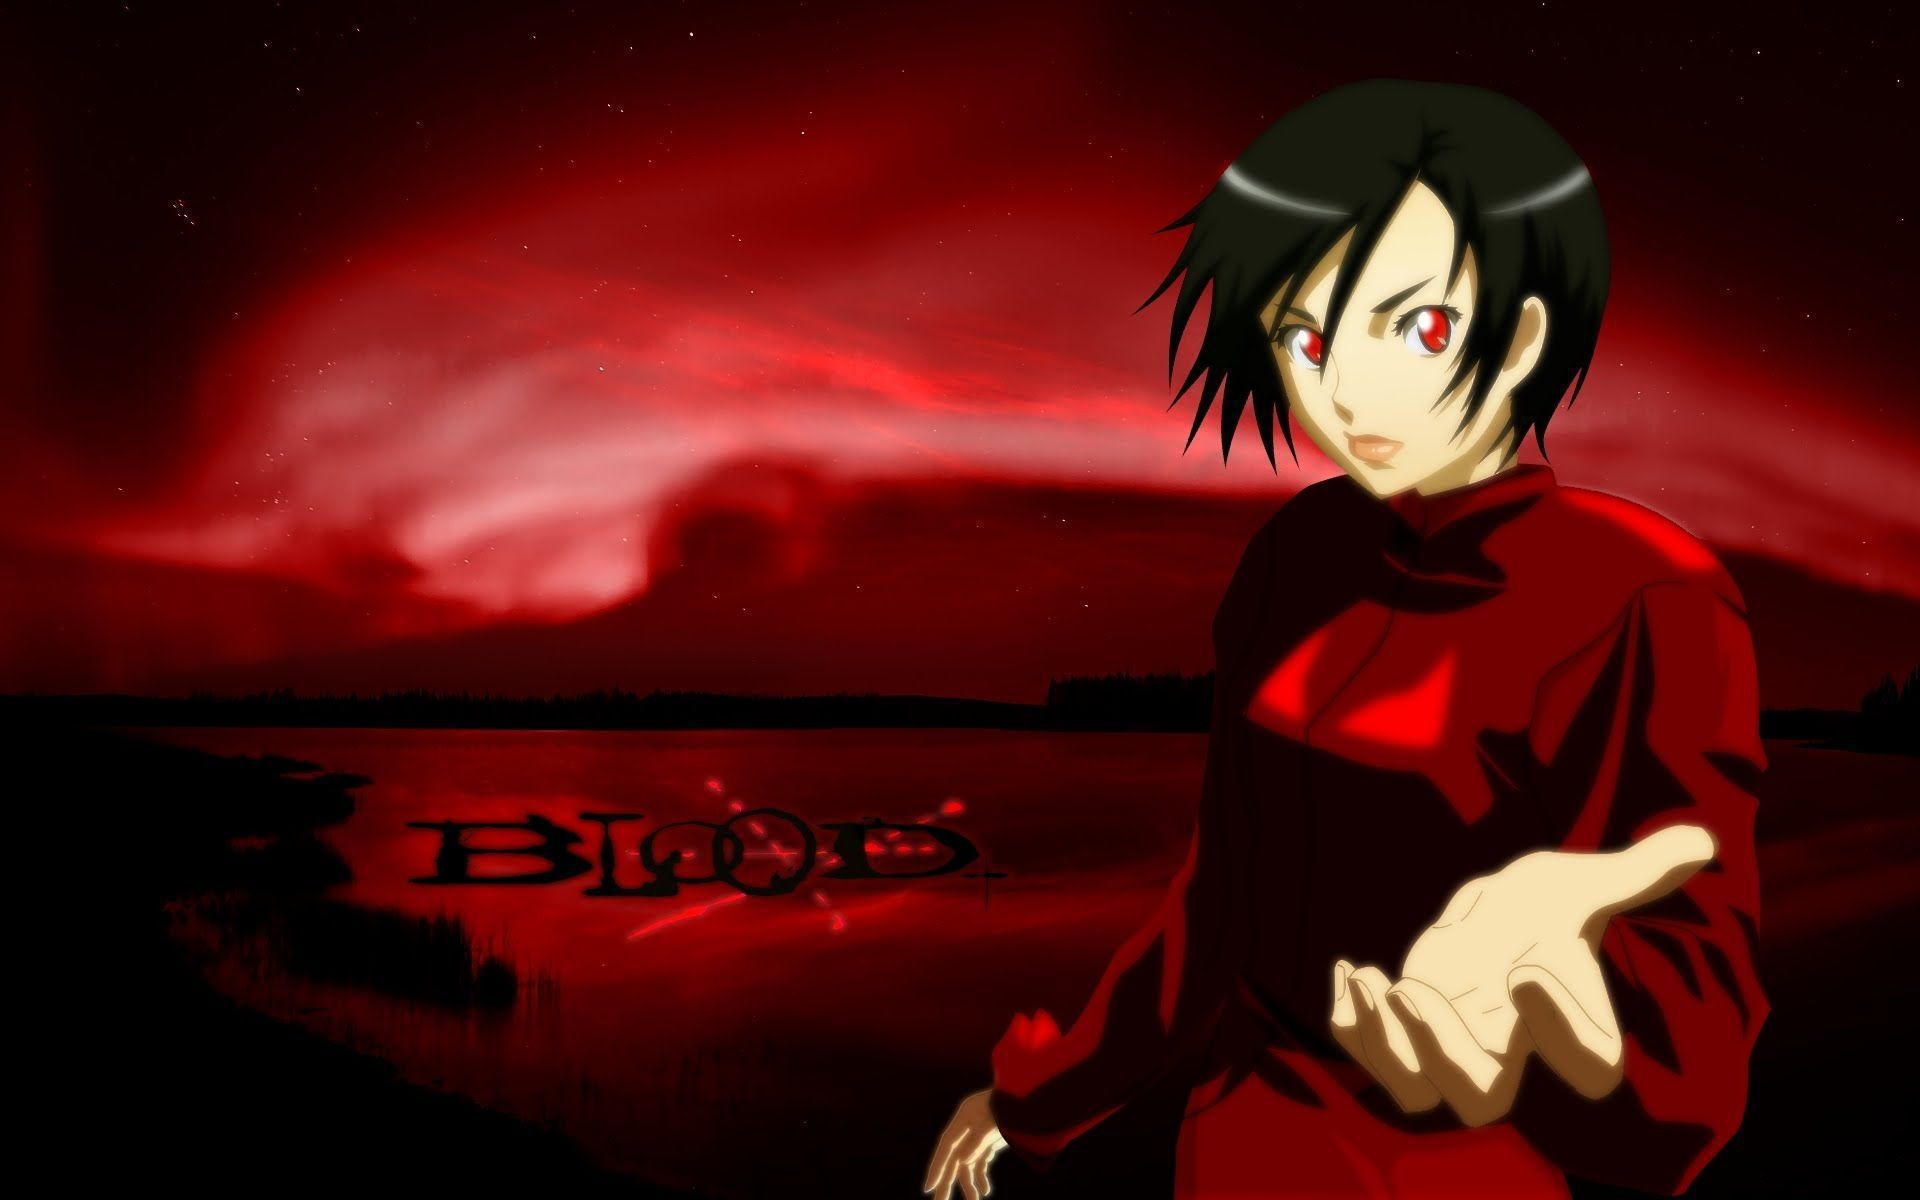 Free Download Wallpaper Anime Girl Blood Anime Wallpapers Backgrounds